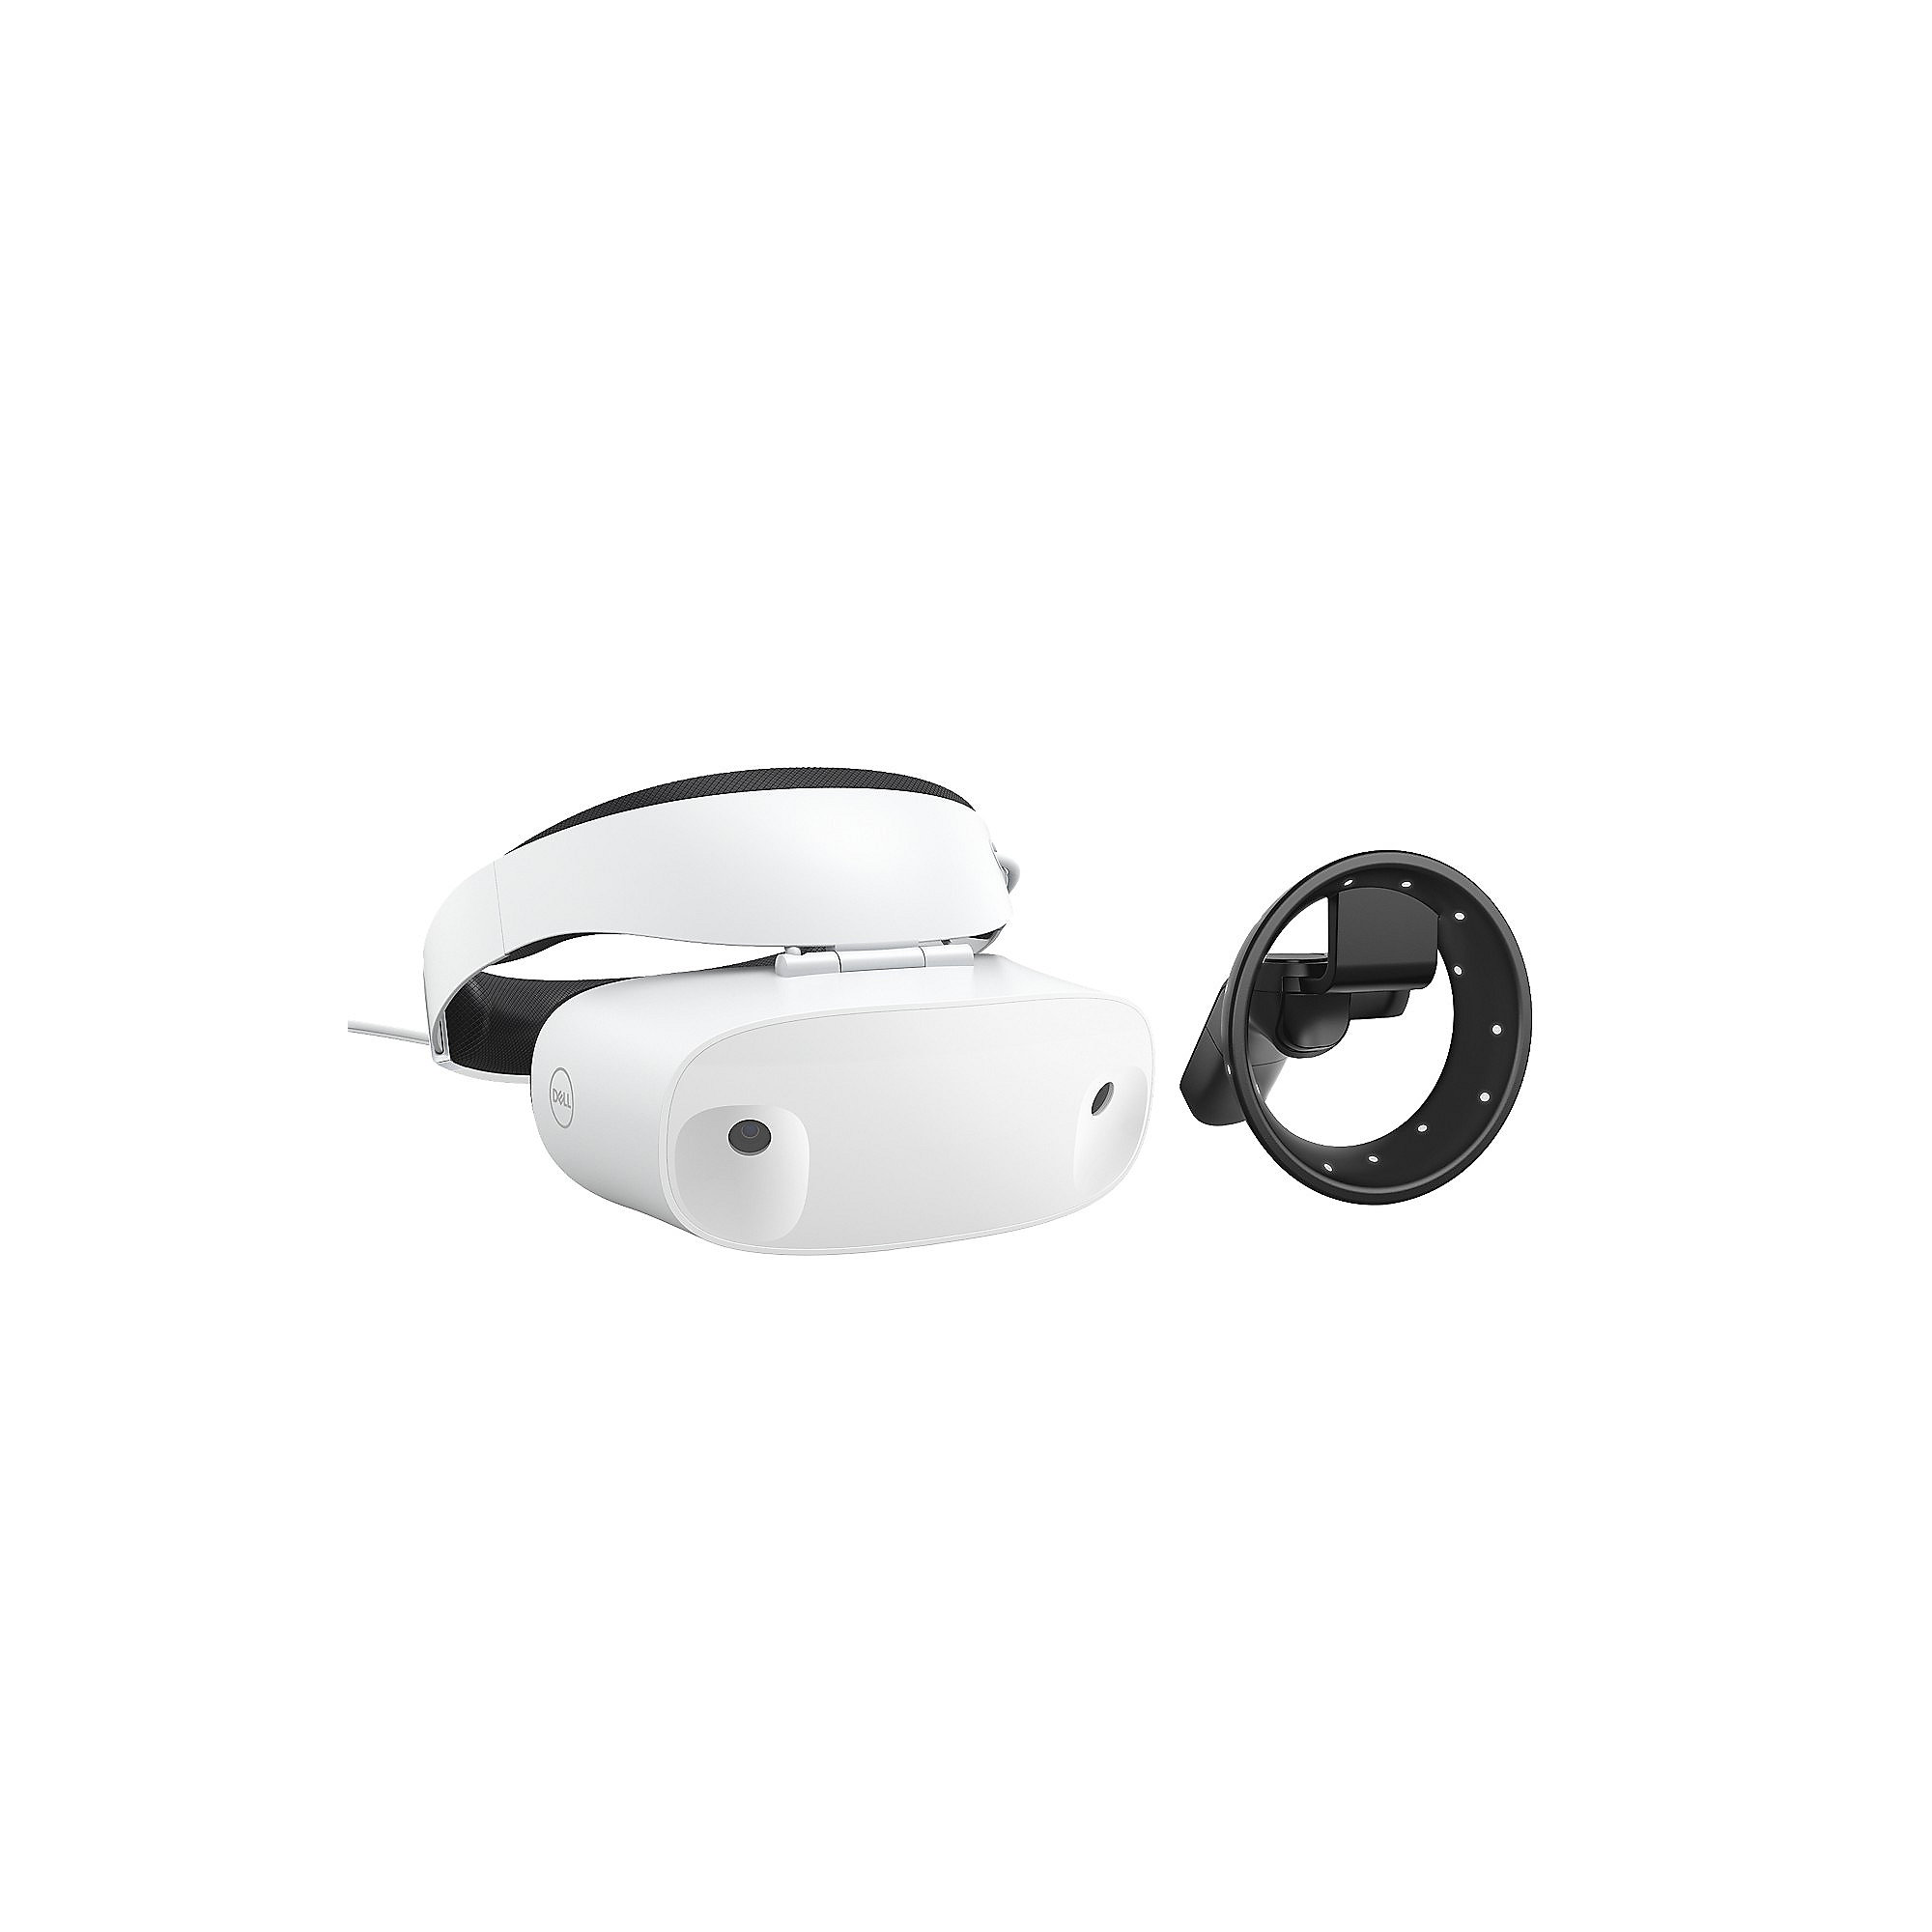 .Dell Mixed Reality Headset VR Brille